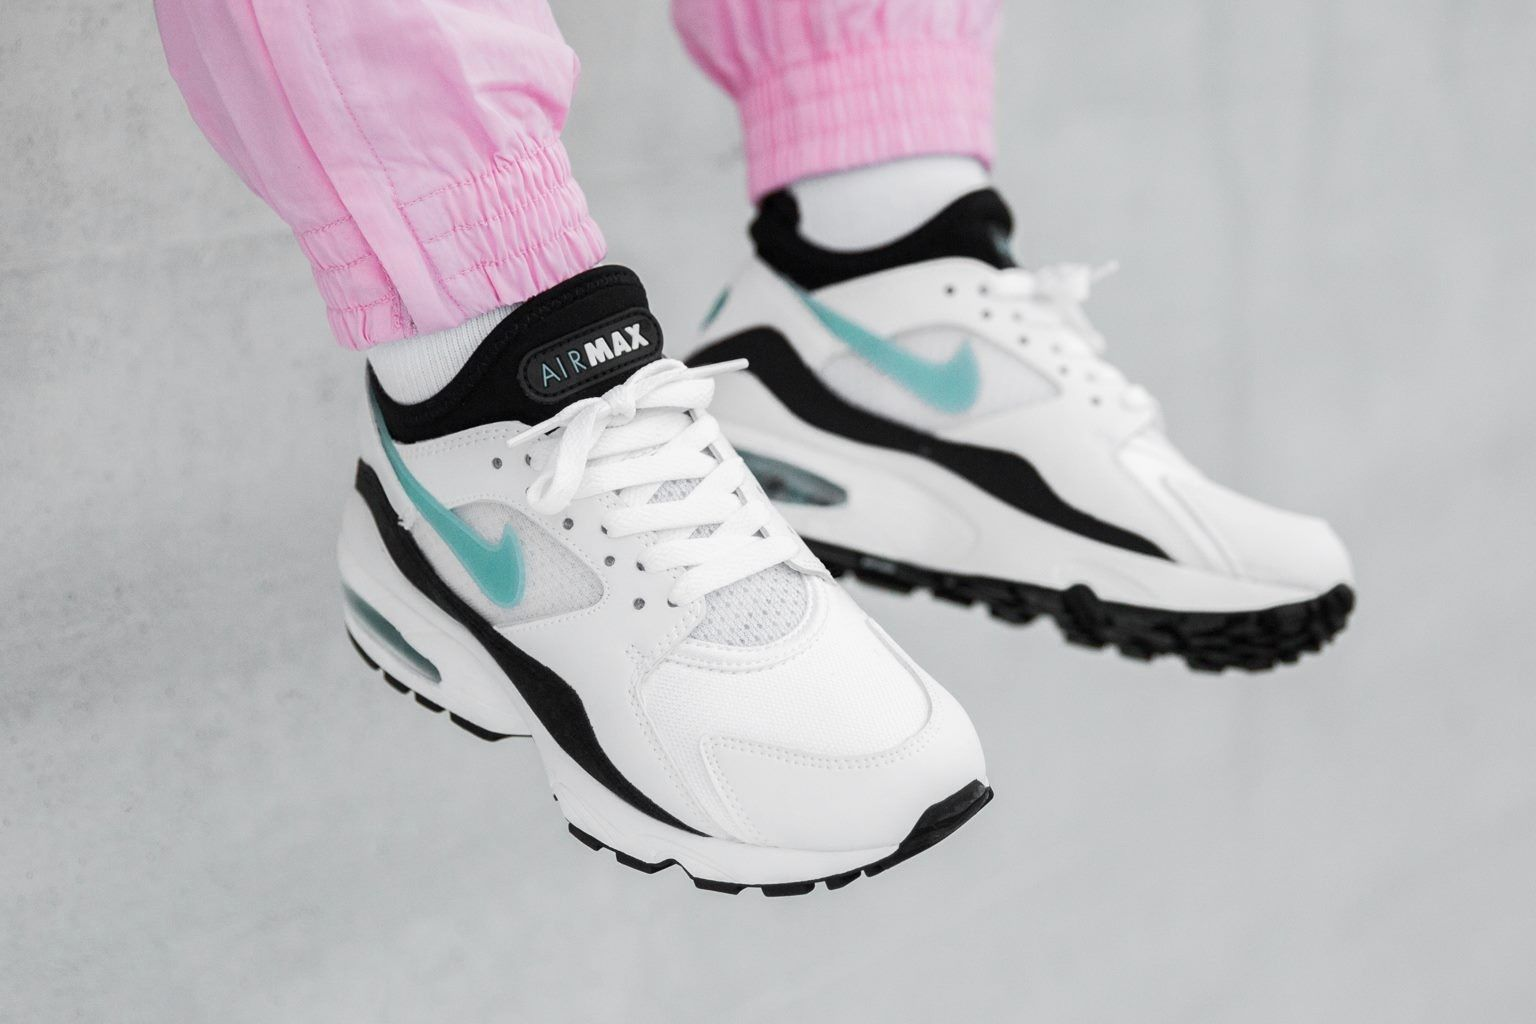 20a3de094a2 ... get nike air max 93 dusty cactus turquoise womens ladies girls sneakers  trainers where to buy